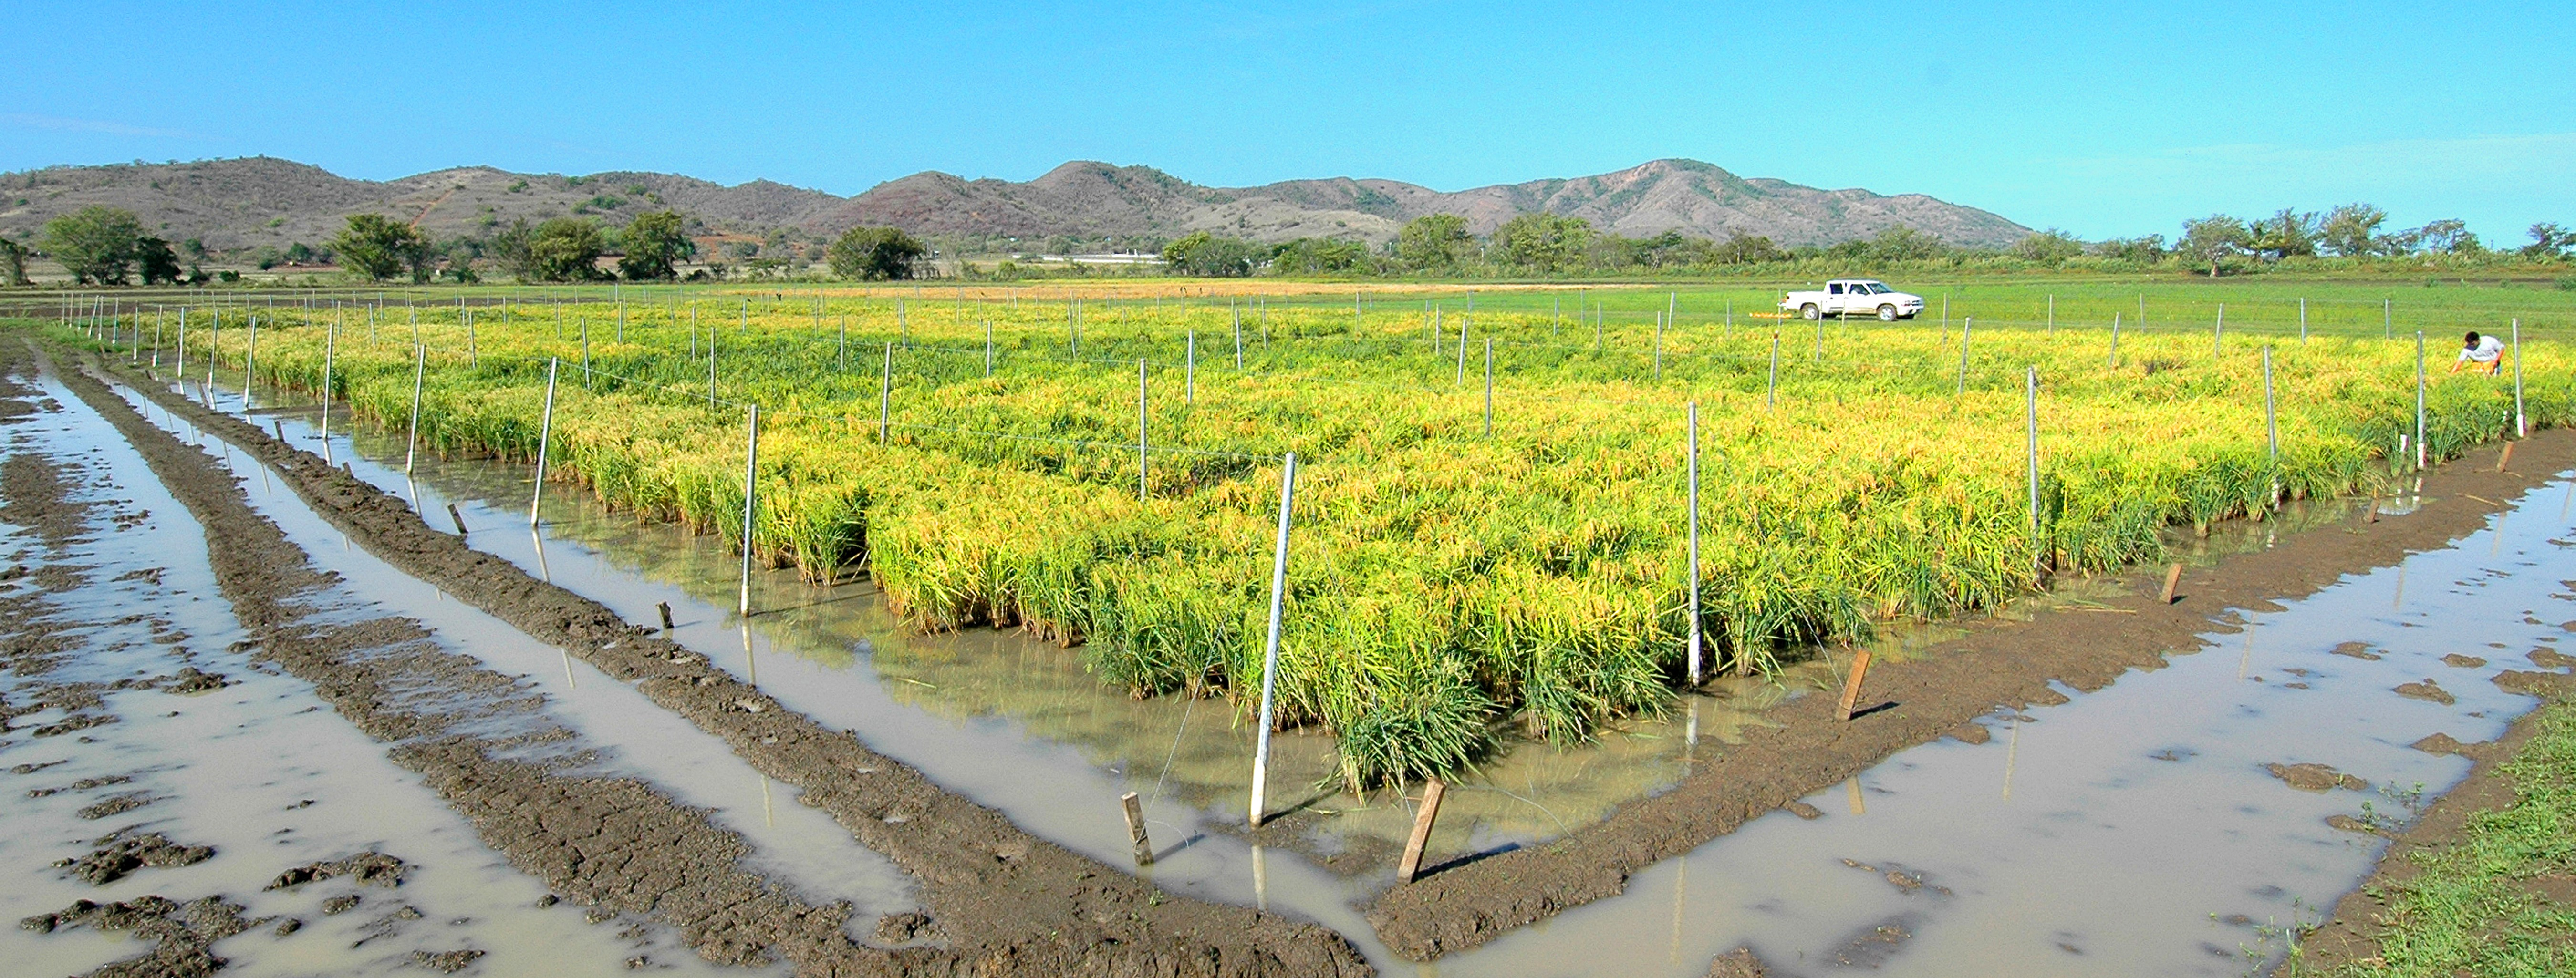 LSU AgCenter rice nursery in Puerto Rico survives hurricane